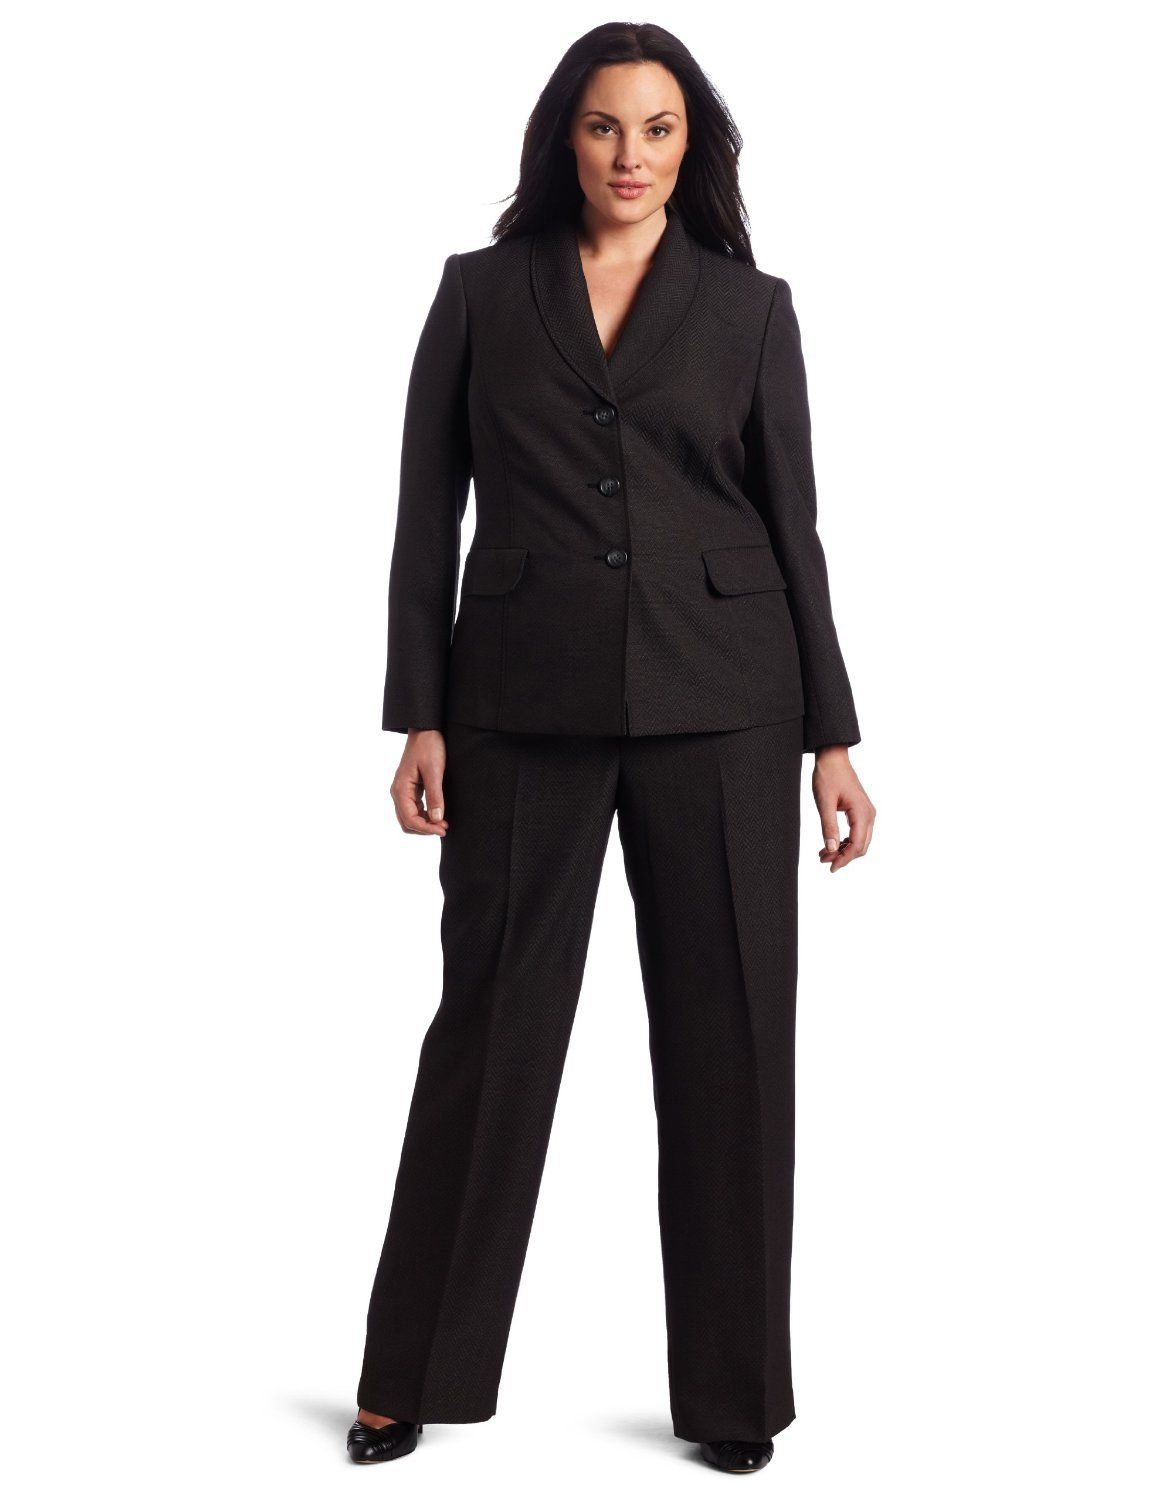 4514c1554e8 Evan Picone Womens Plus-Size Large Herringhone Pant Suit